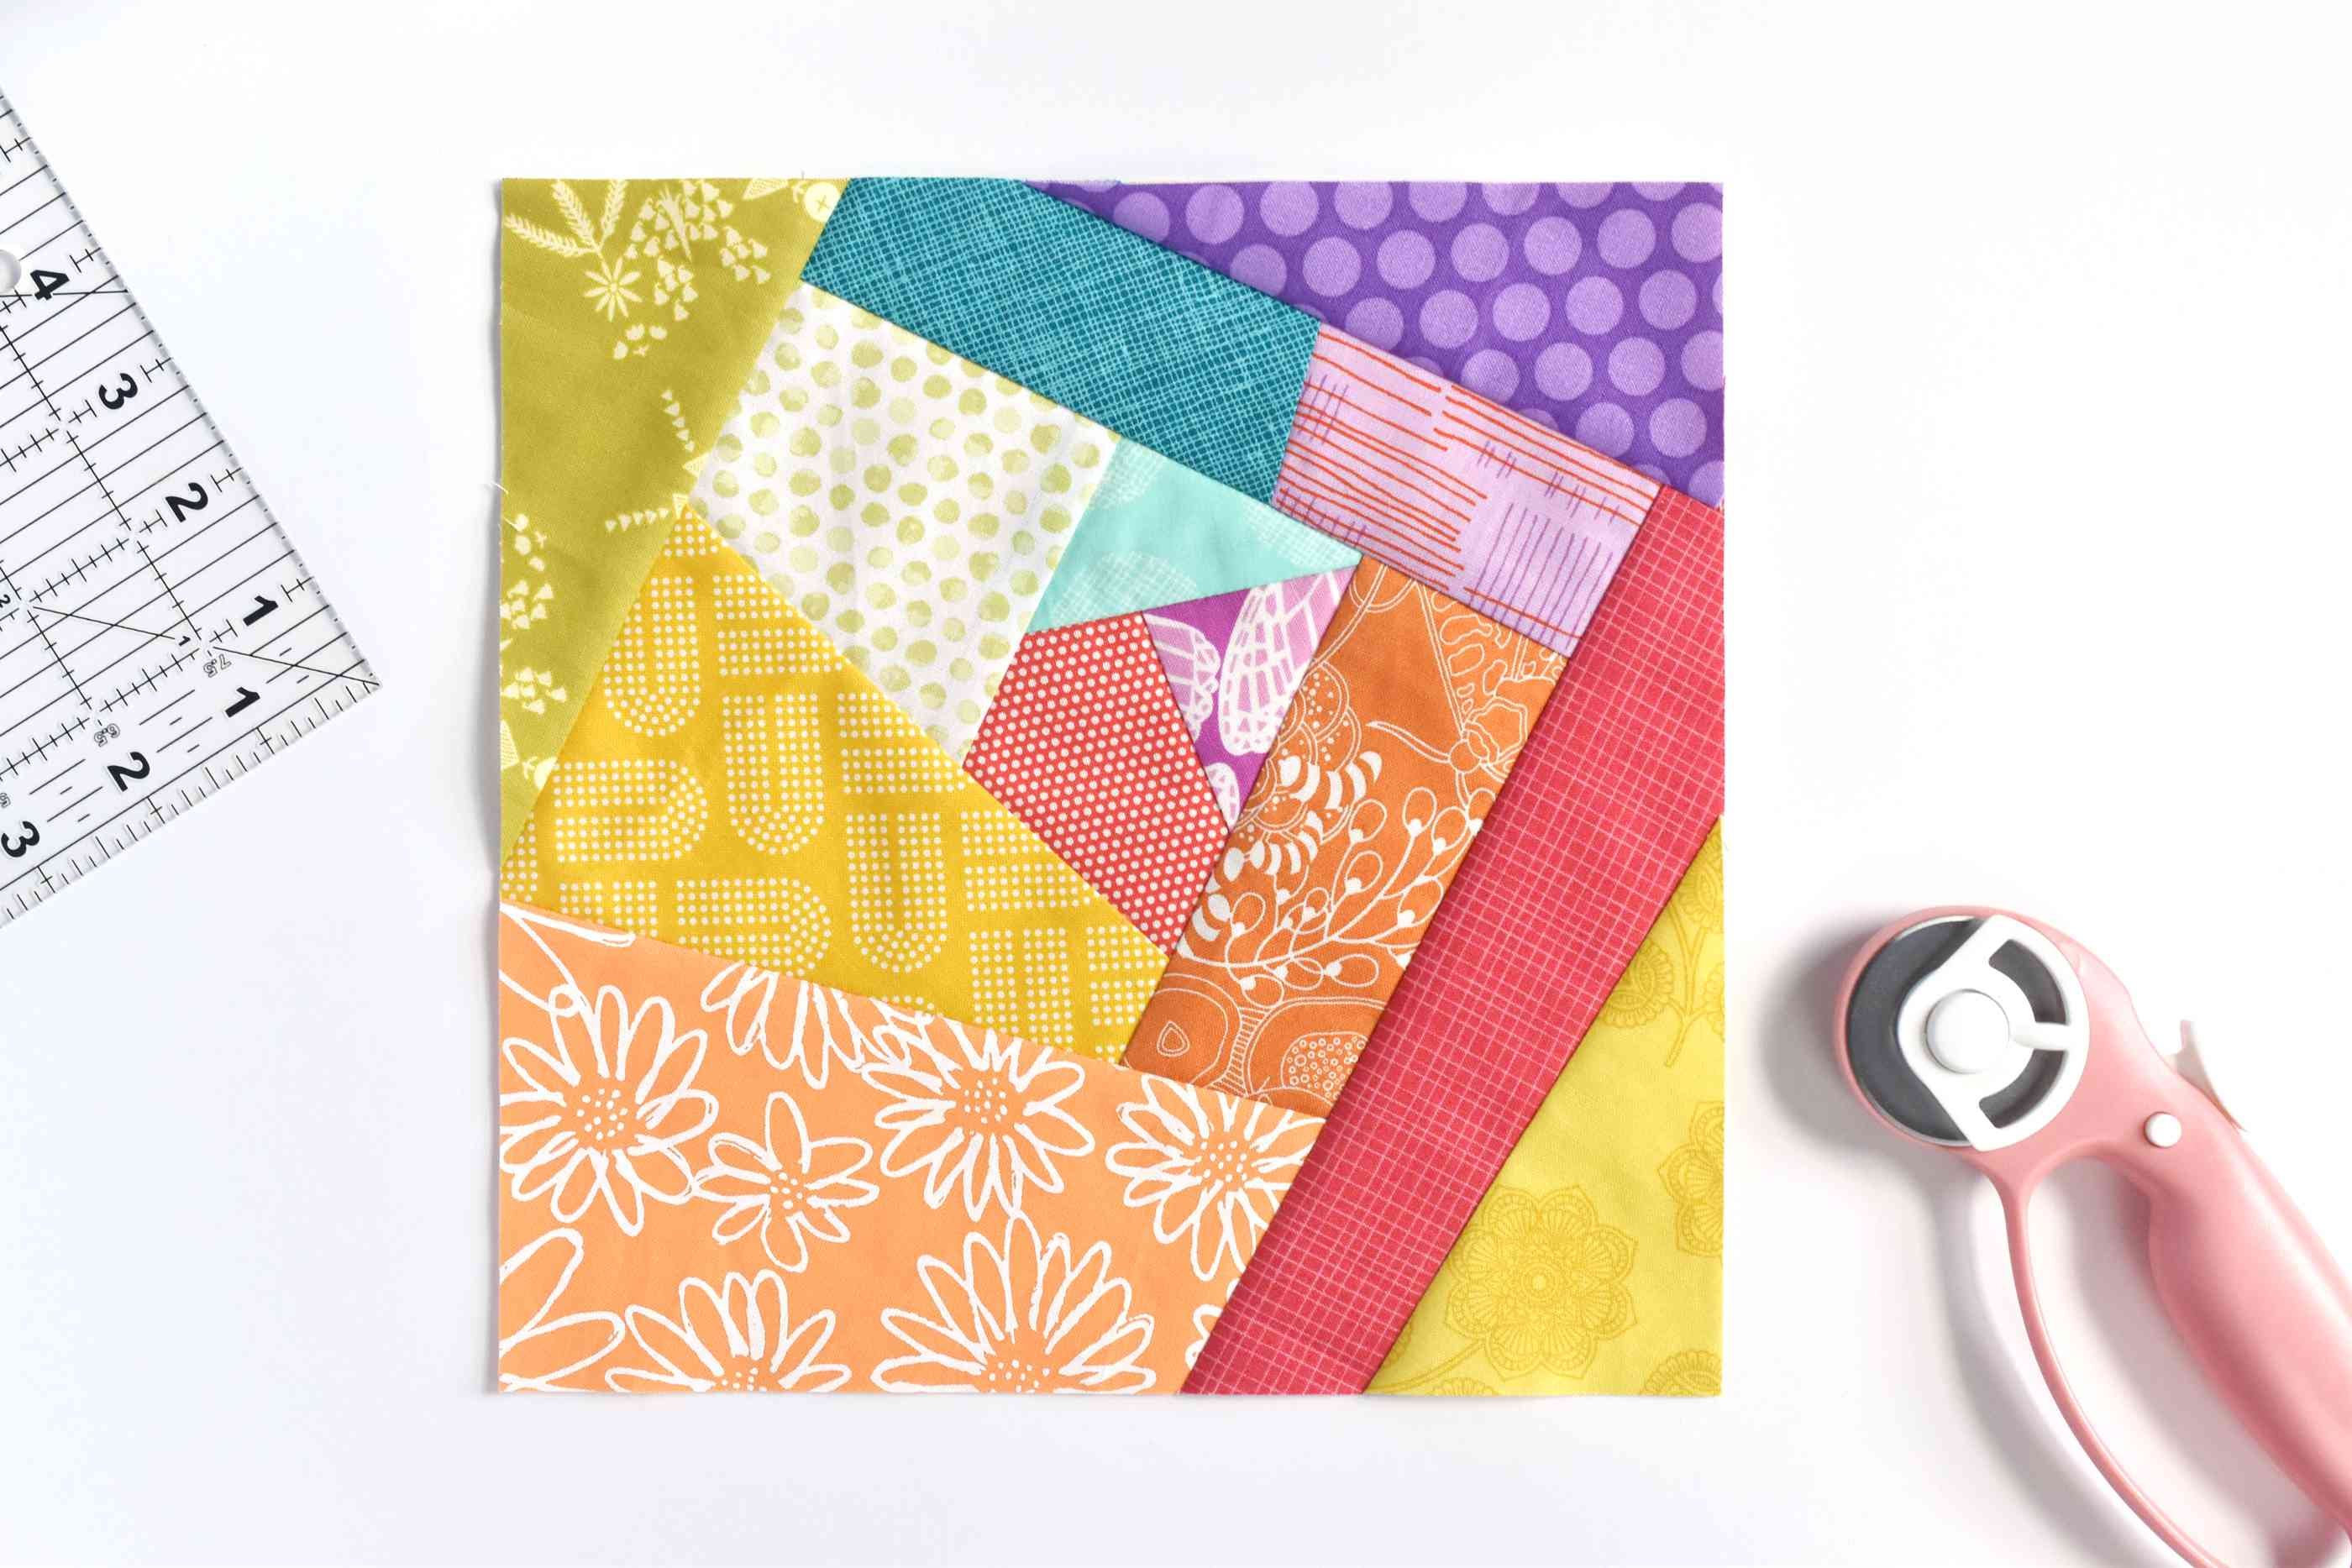 A finished crazy quilt block